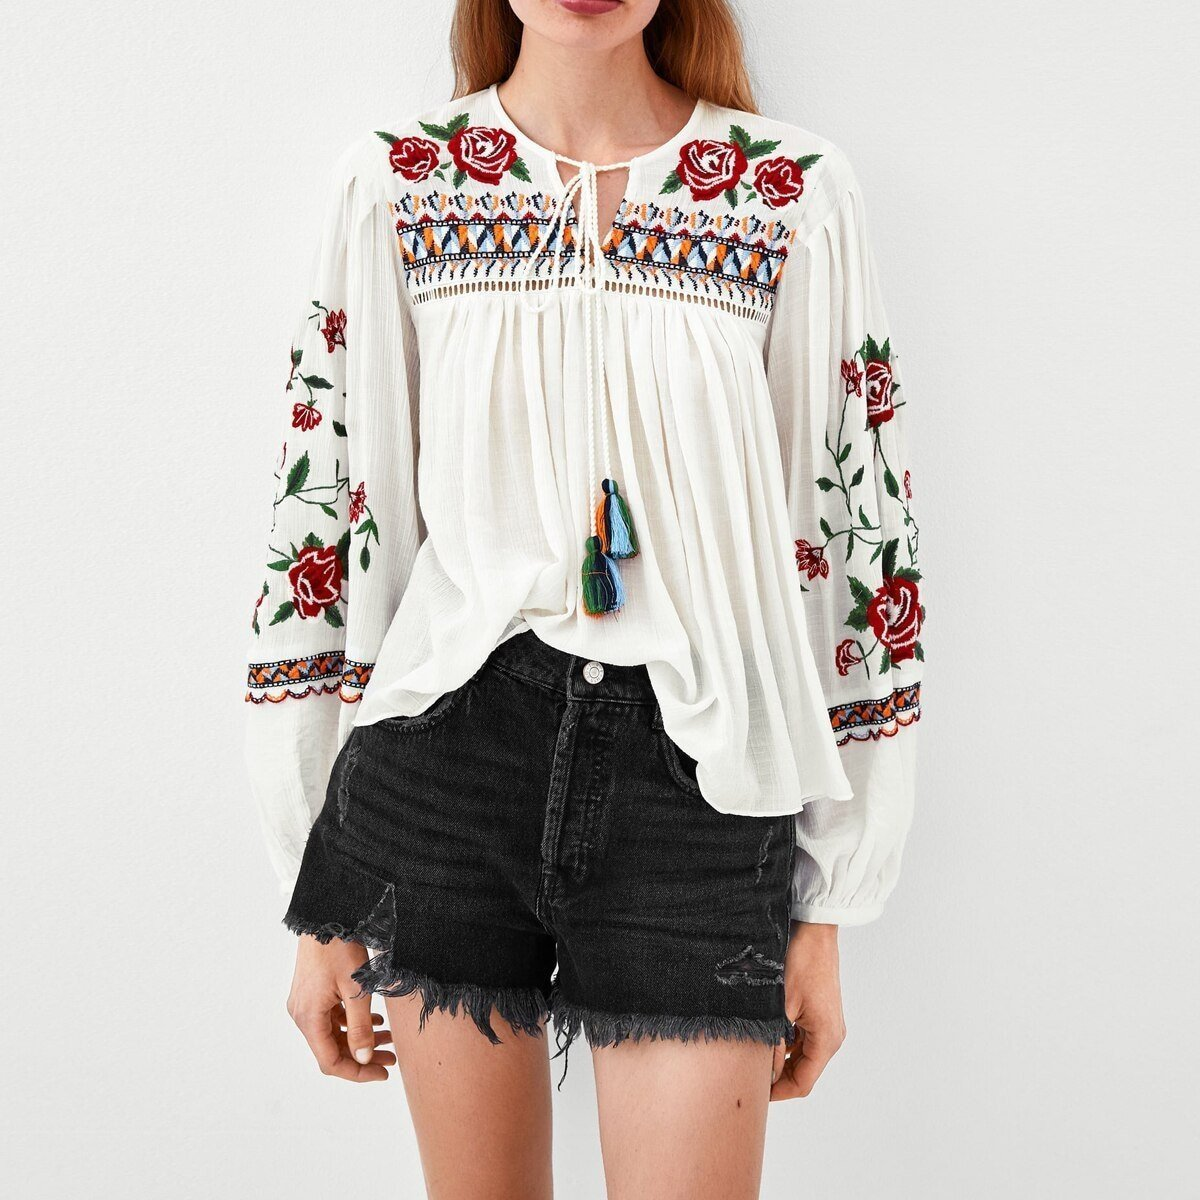 Embroidered Boho Tunic - S